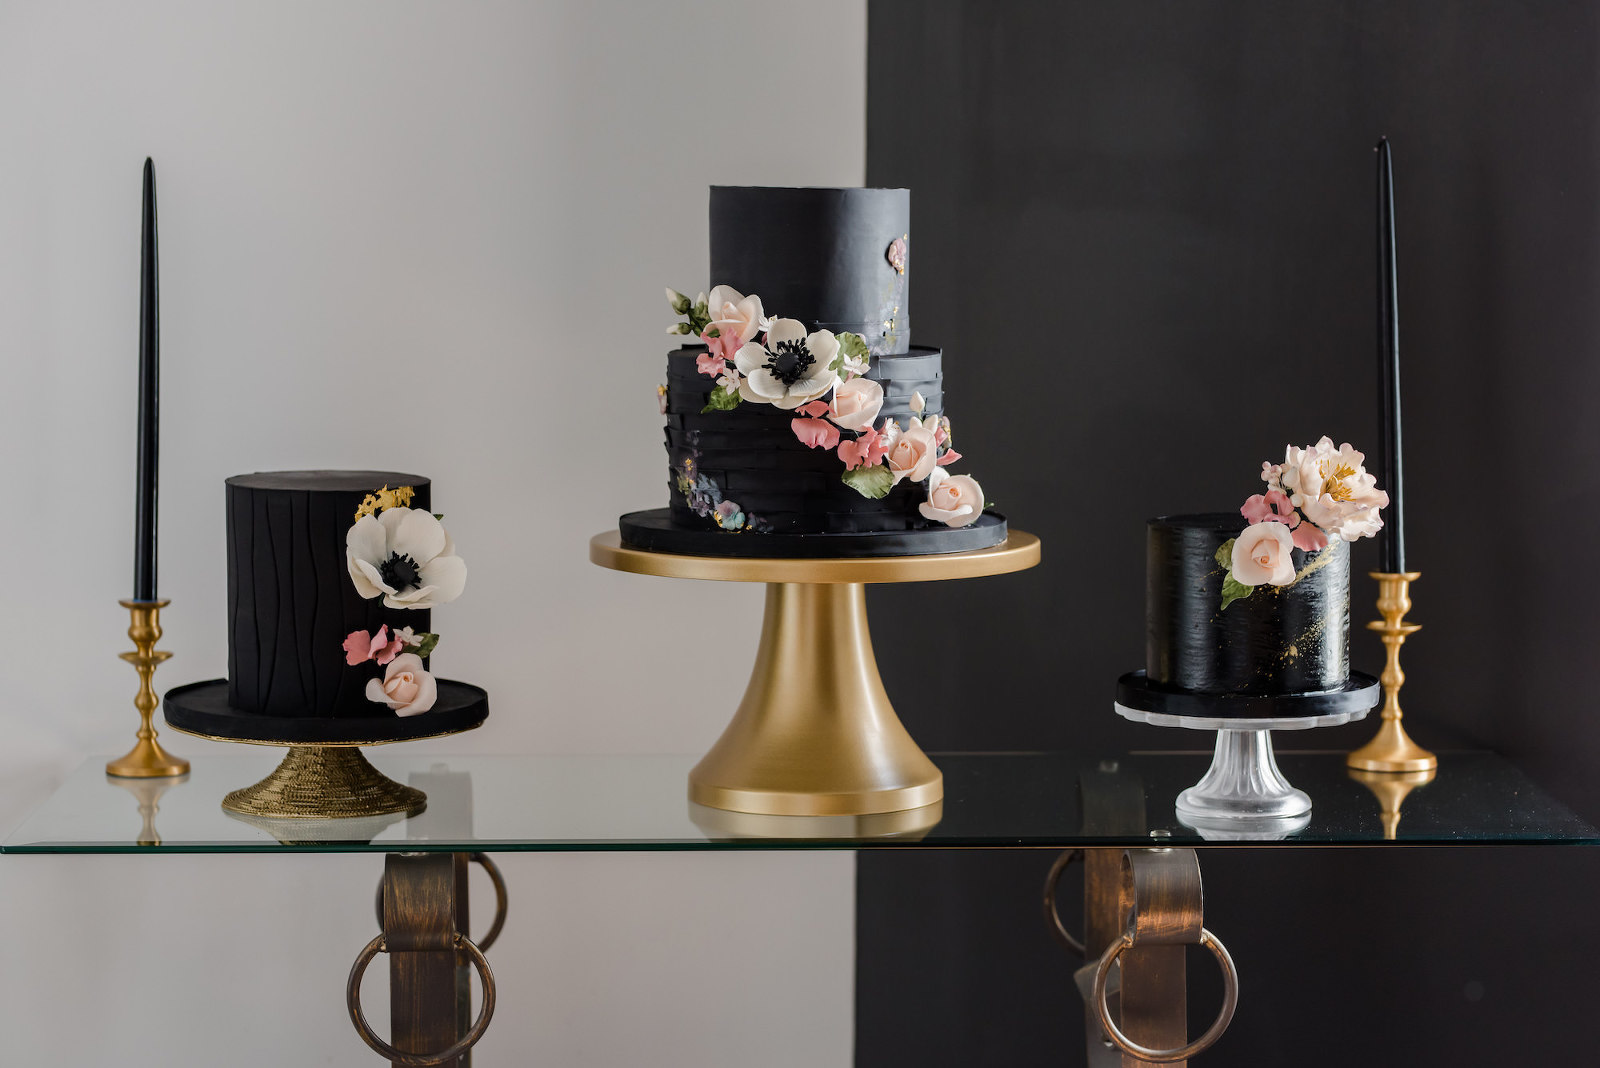 Dark Luxe, Unique Three Separate Black Wedding Cakes with Cascading Blush Pink and Anemone Flowers | Tampa Wedding Cake Company Tampa Bay Cake Company | Wedding Planner Elegant Affairs by Design